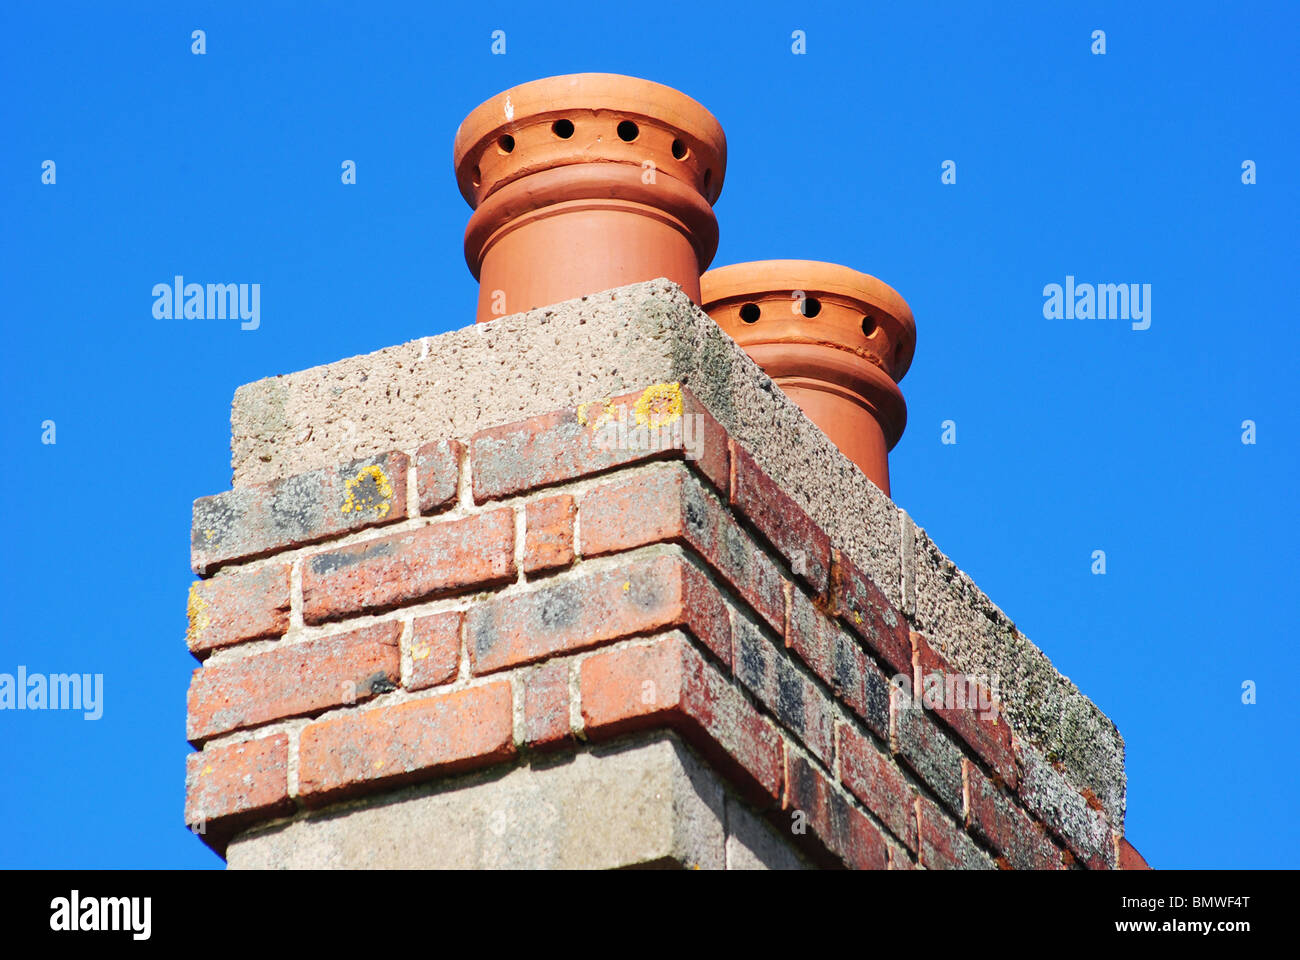 Chimney Stacks on a Sunny Day. - Stock Image